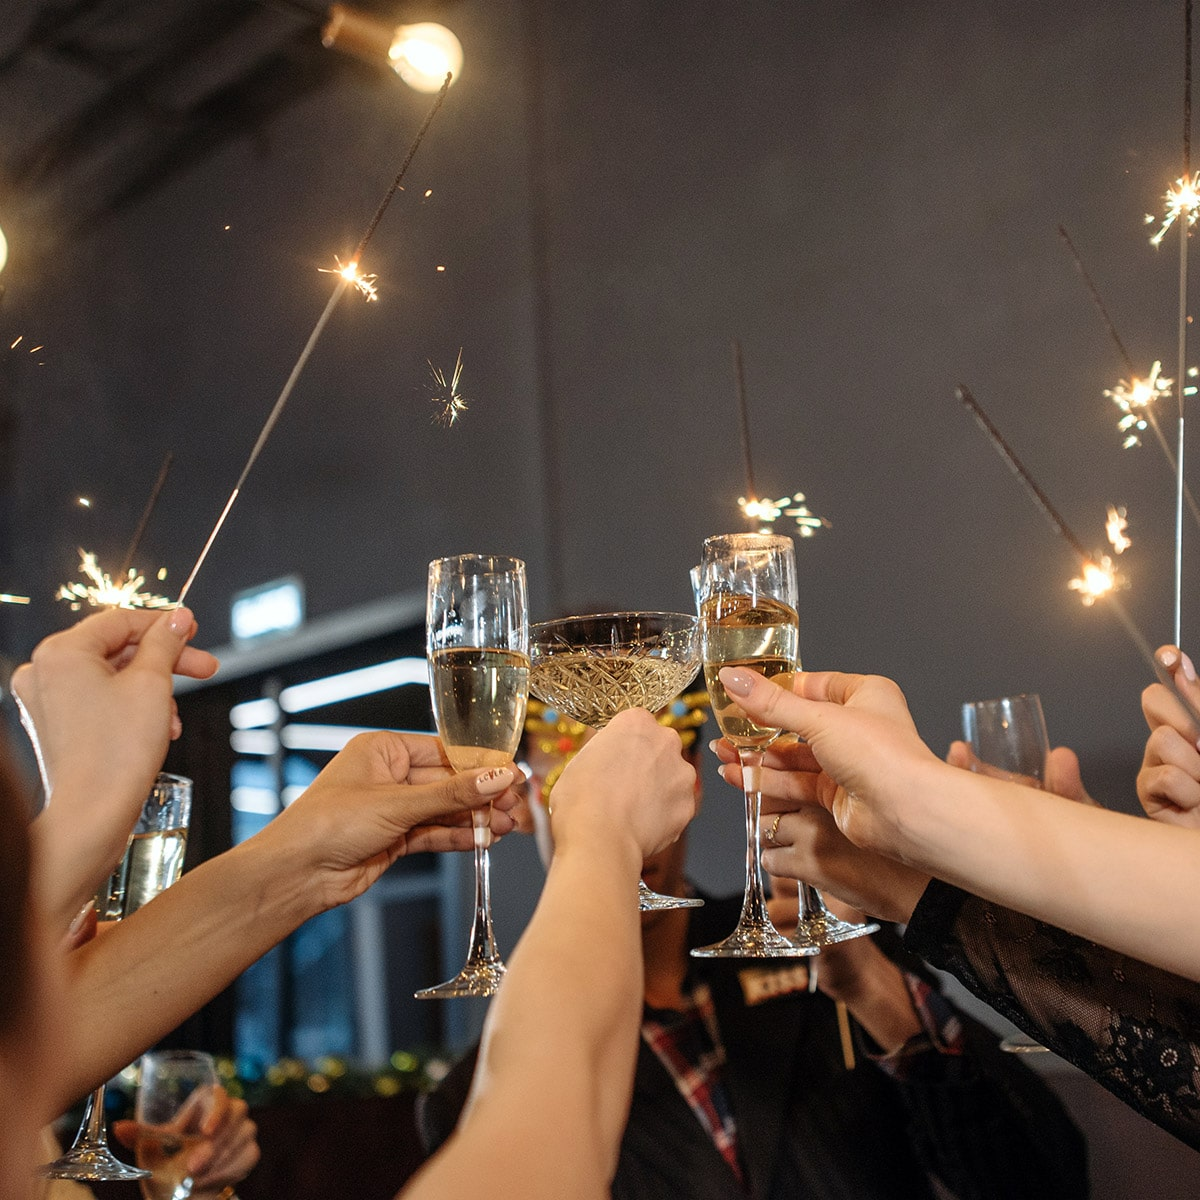 Image of People Using Sparklers at a Party or Event